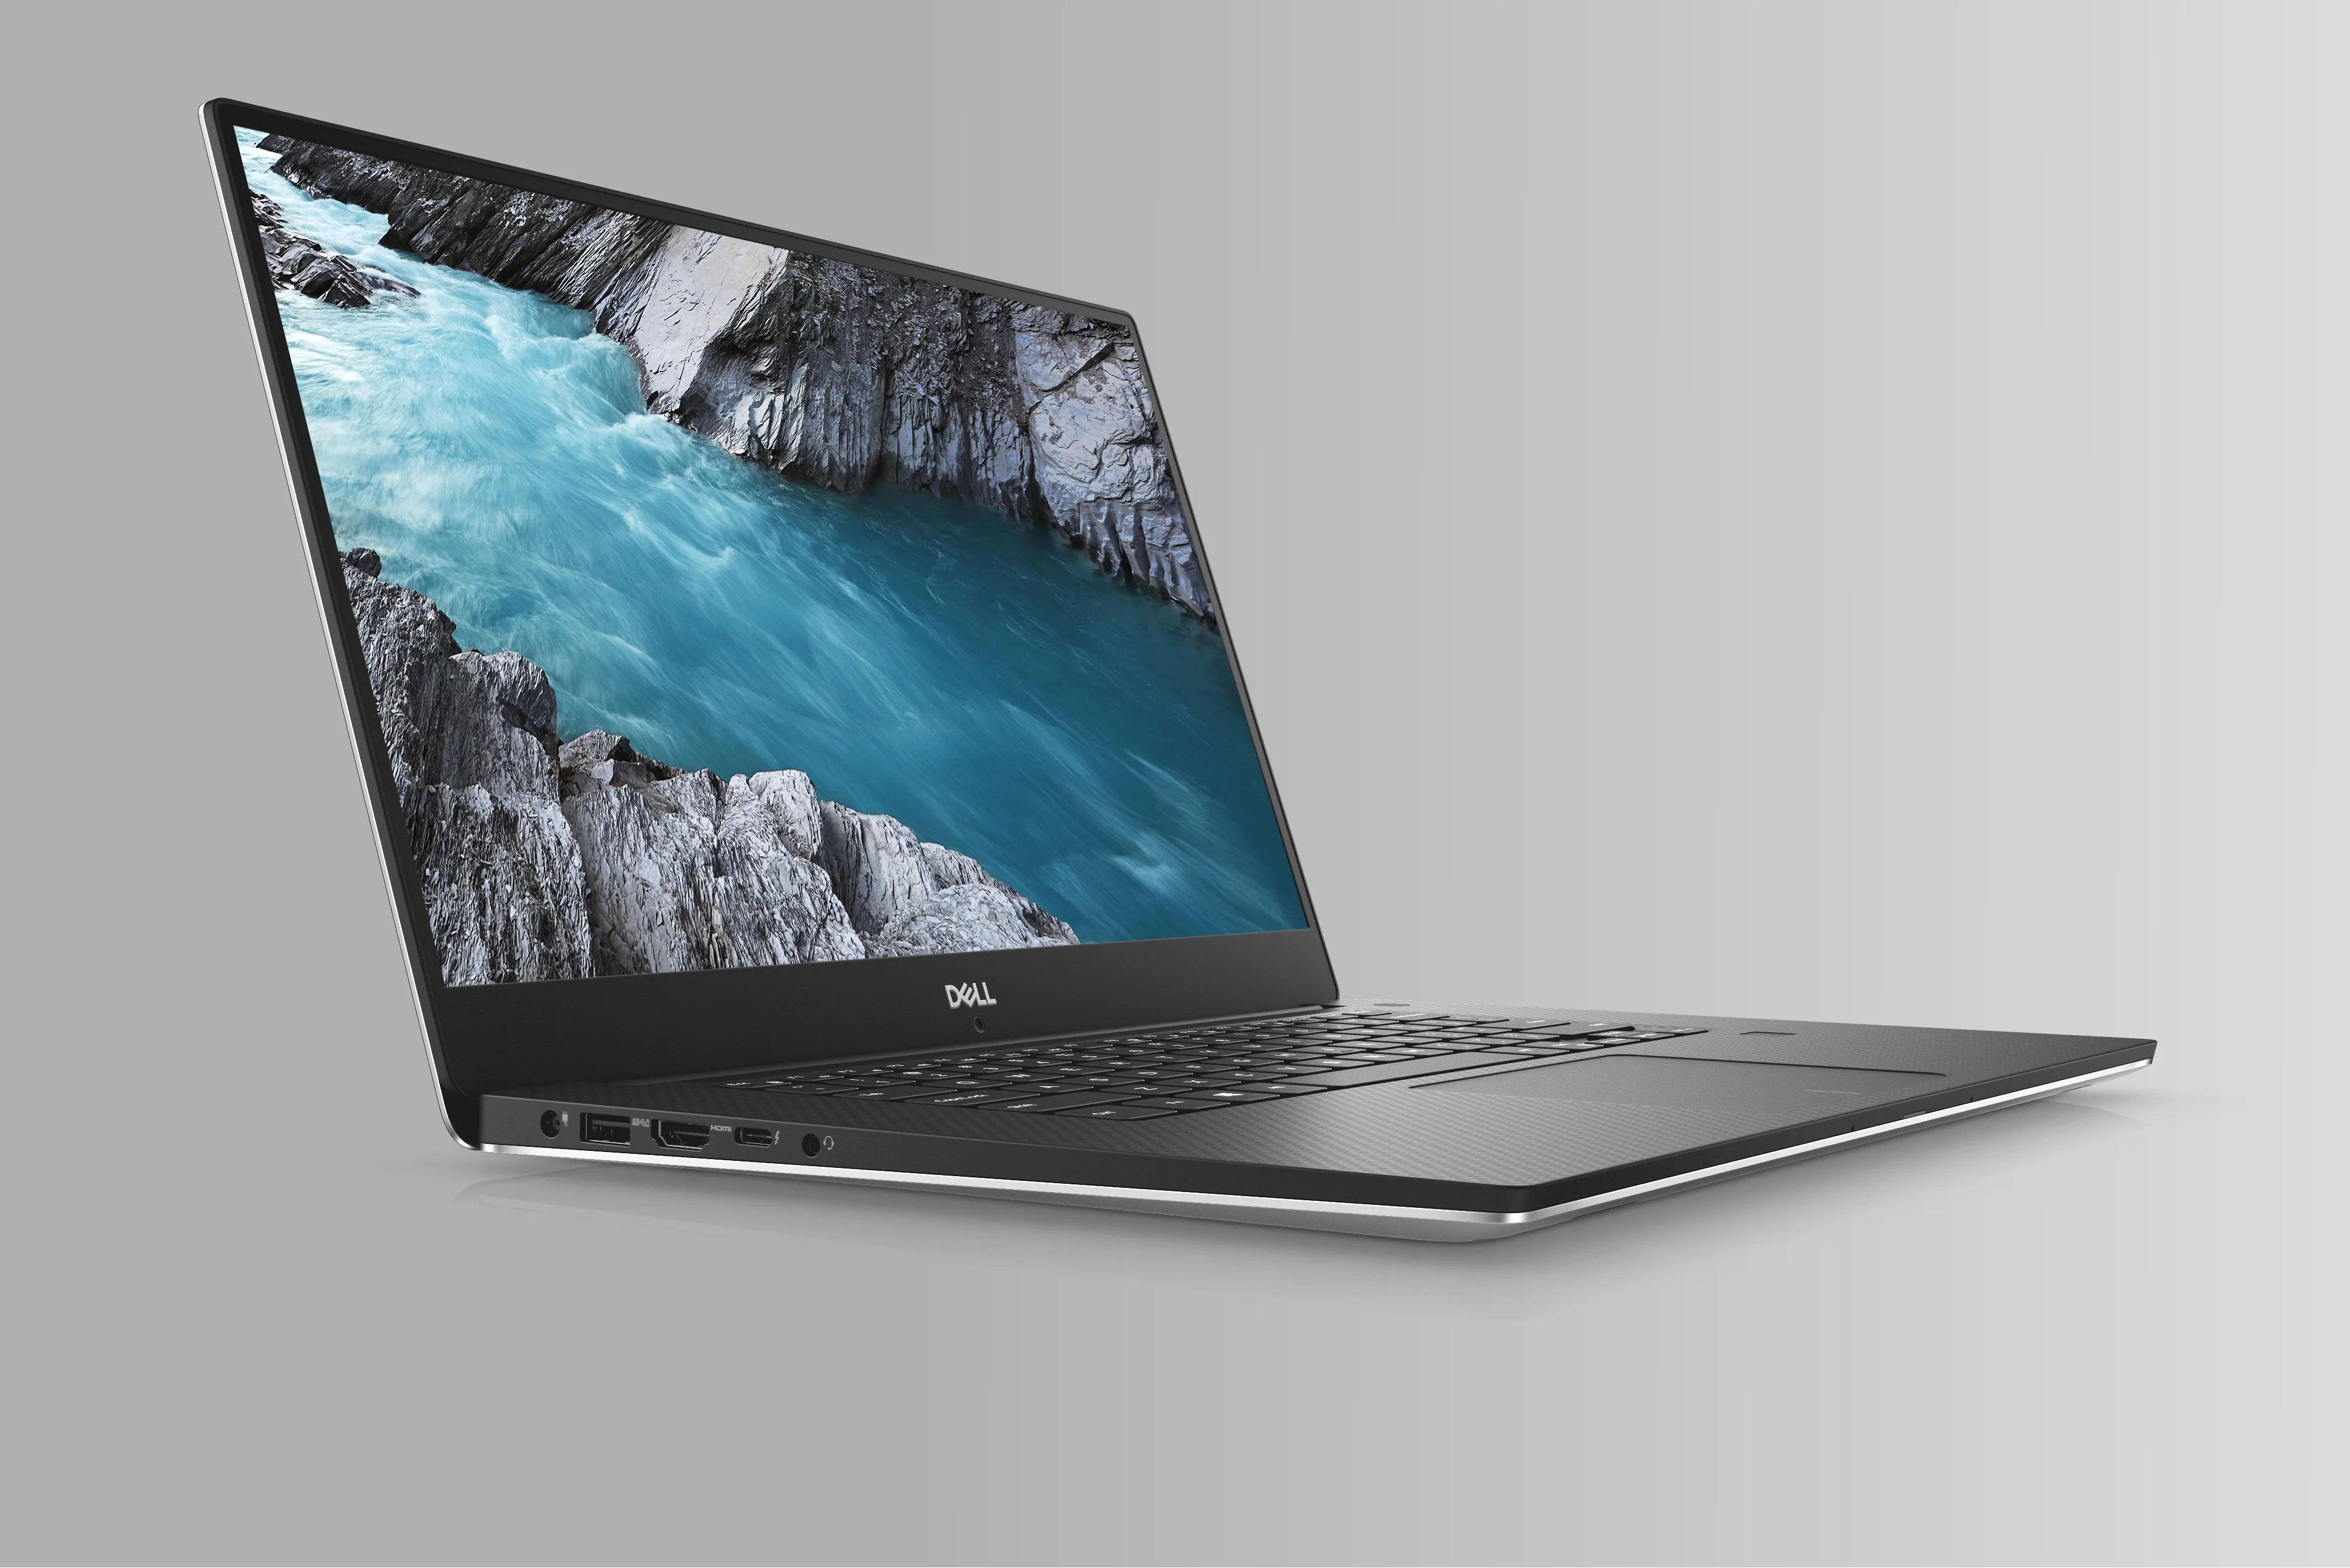 Dell Just Unveiled Its Most Powerful XPS 15 Laptop Ever And Thats Not All